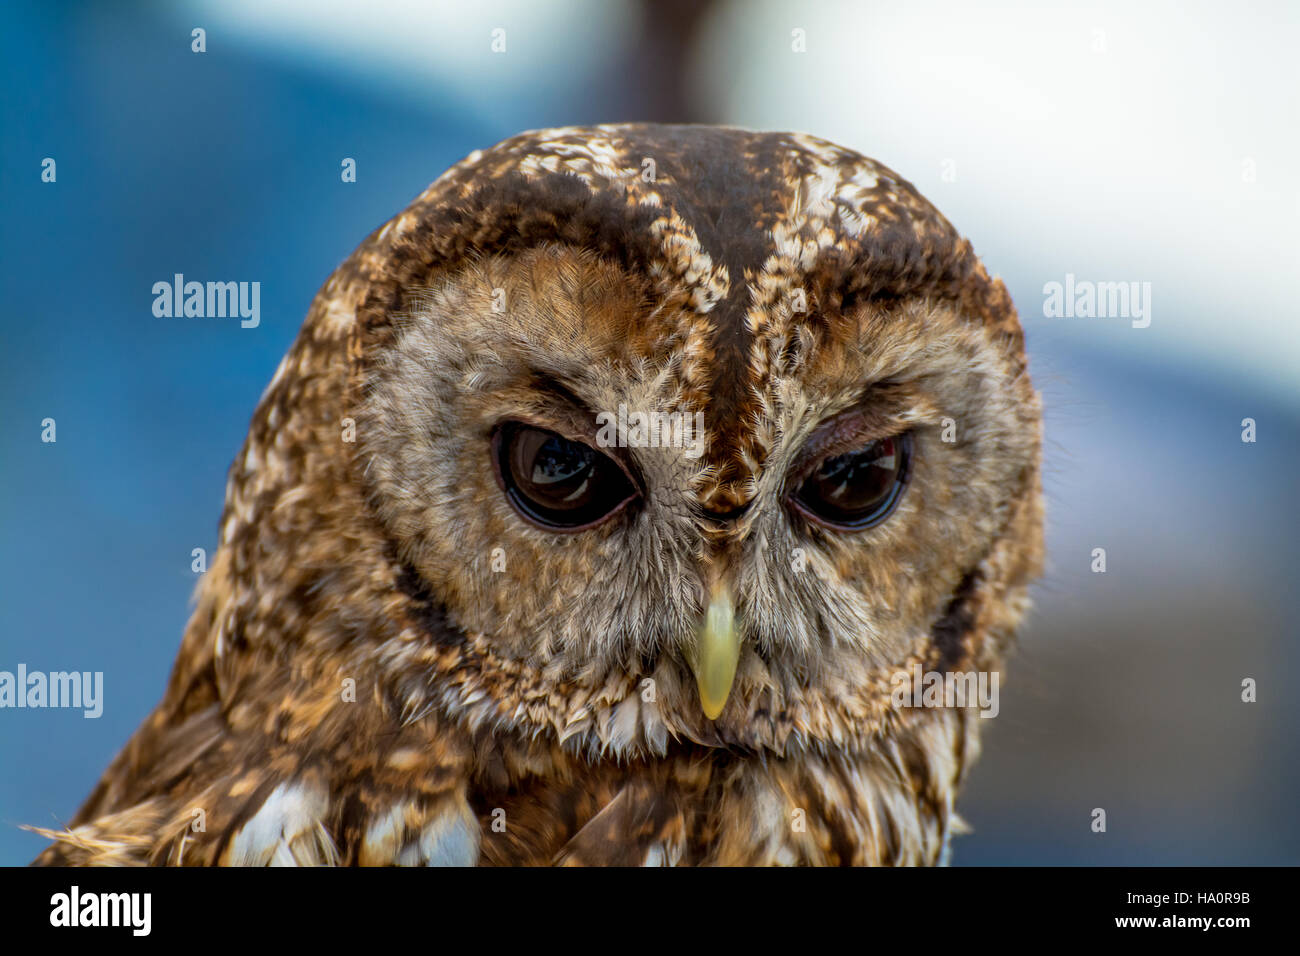 Close-Up Of Owl Head - Stock Image